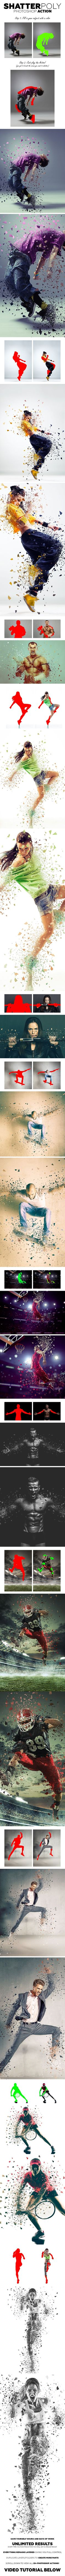 ShatterPoly #Photoshop Action - #Photo Effects #Actions Download here: https://graphicriver.net/item/shatterpoly-photoshop-action/19359412?ref=alena994